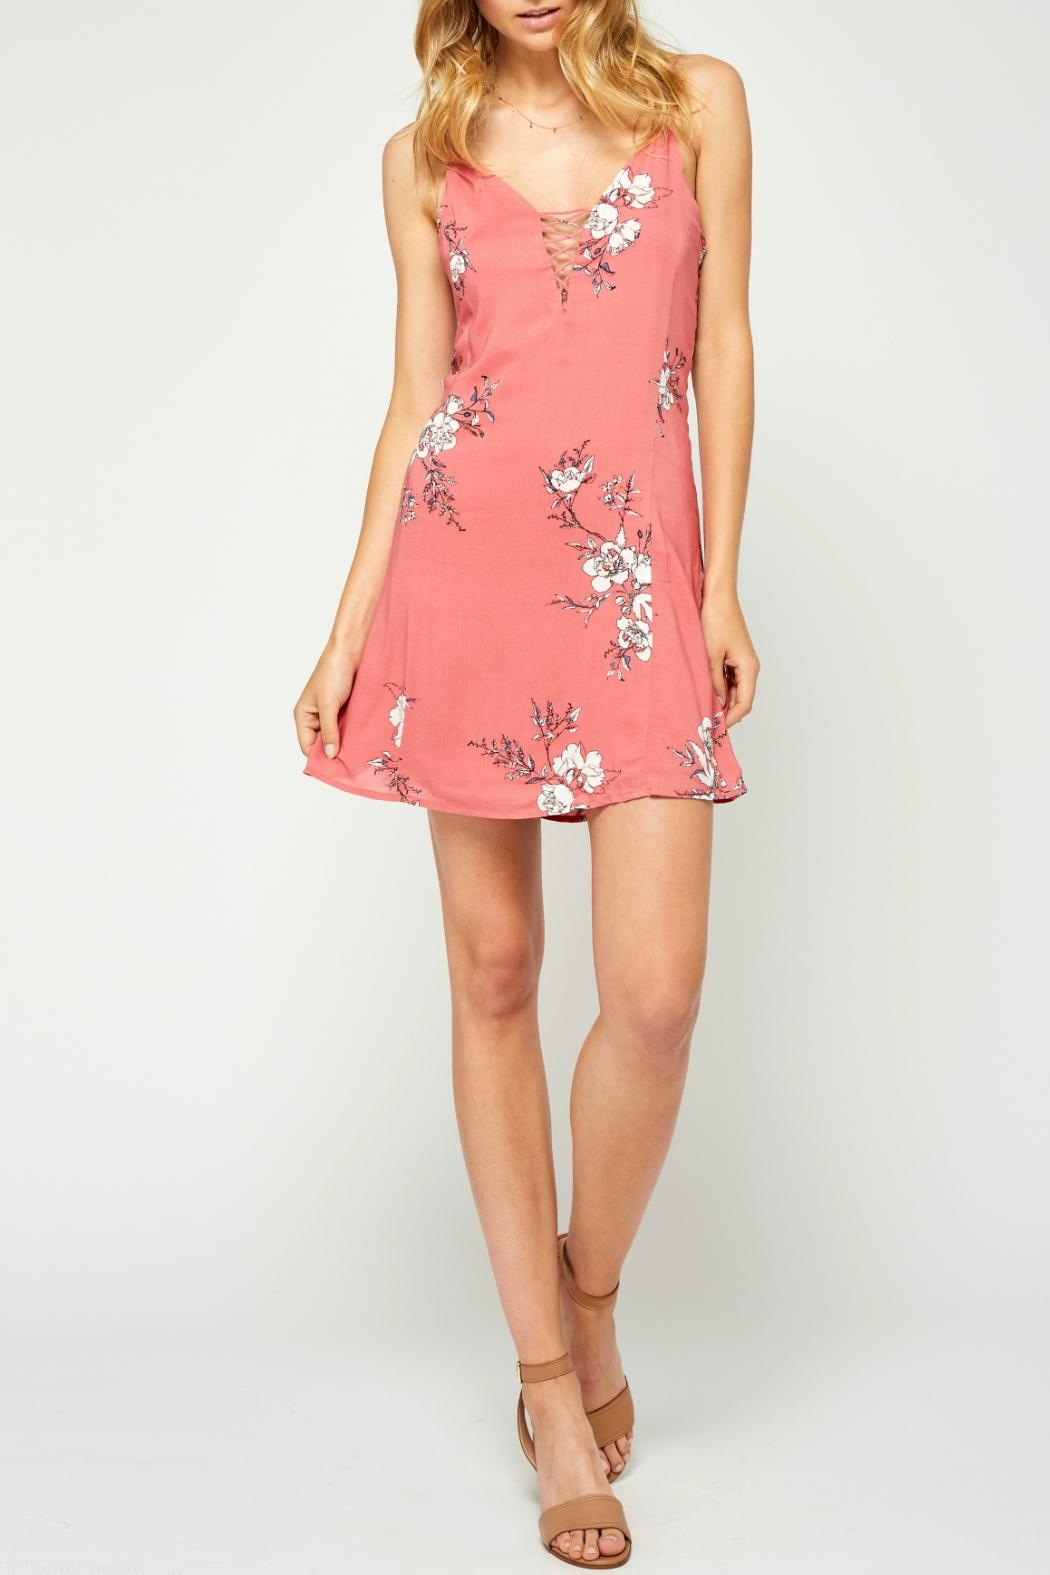 Gentle Fawn Floral Openback Dress - Main Image